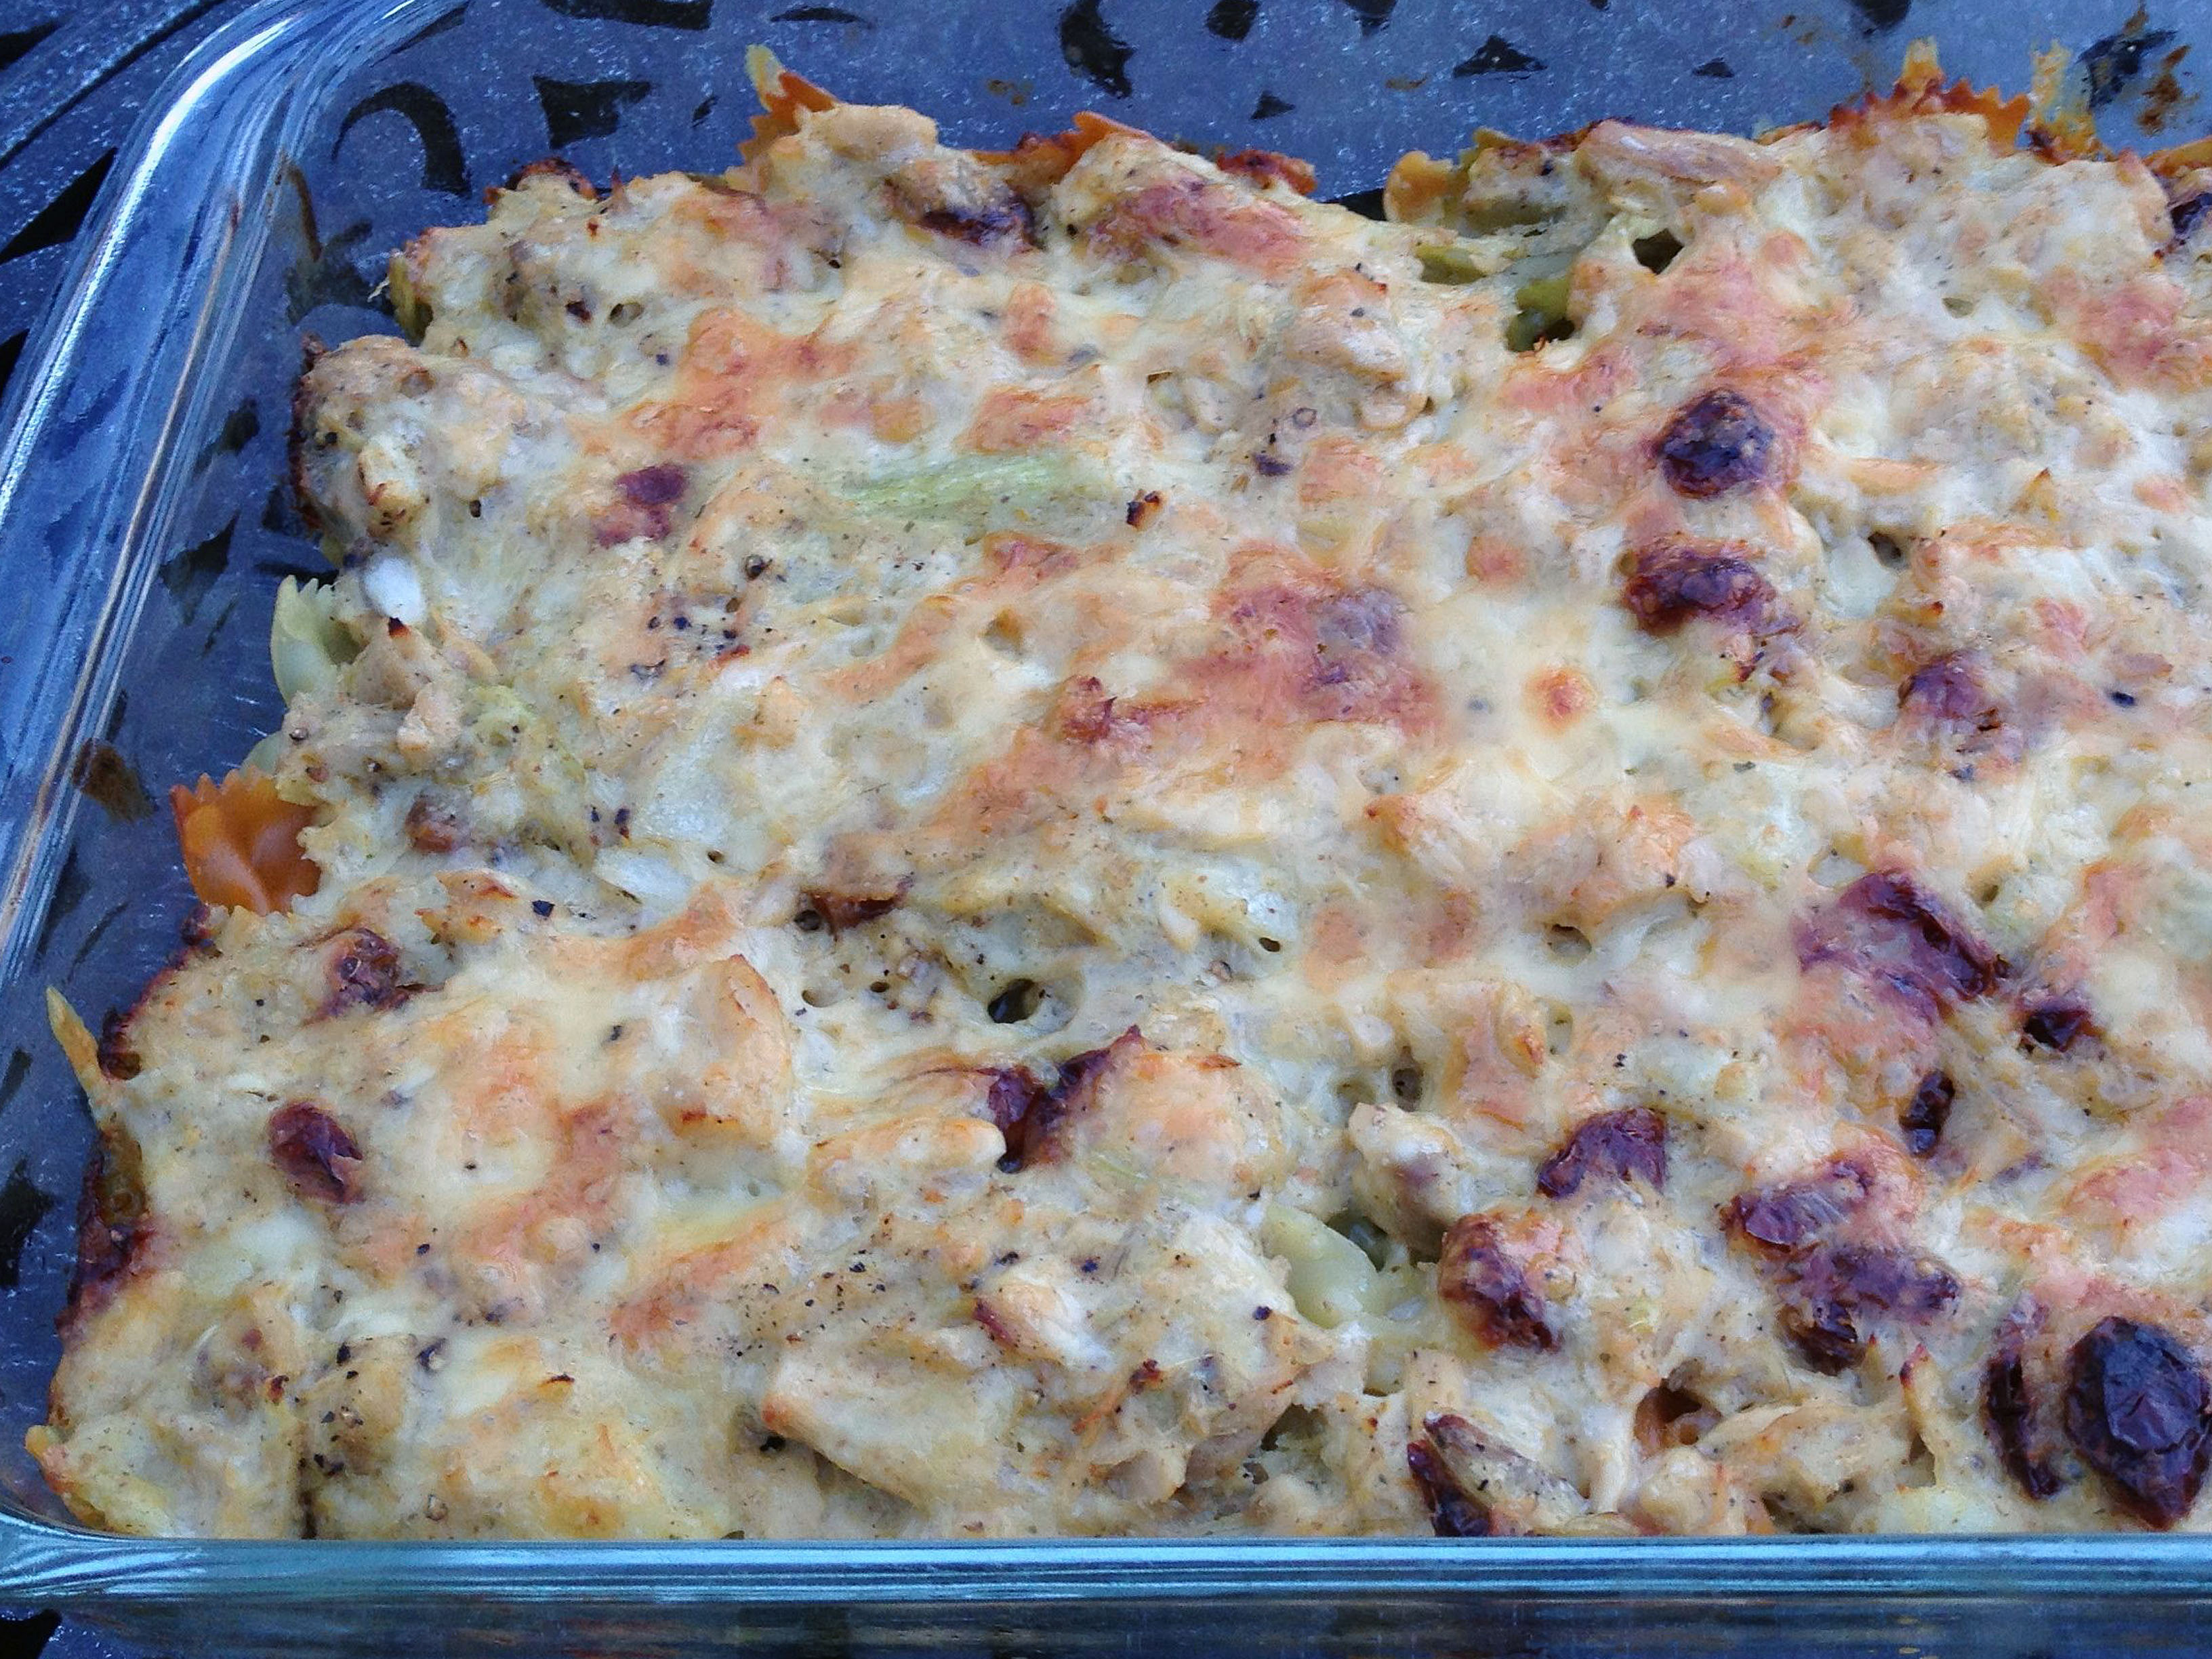 This is a whole-new, grown-up tuna noodle casserole for me. I've have a long-standing favorite recipe from an ancient Betty Crocker cookbook. It has the celery and the onion and […]